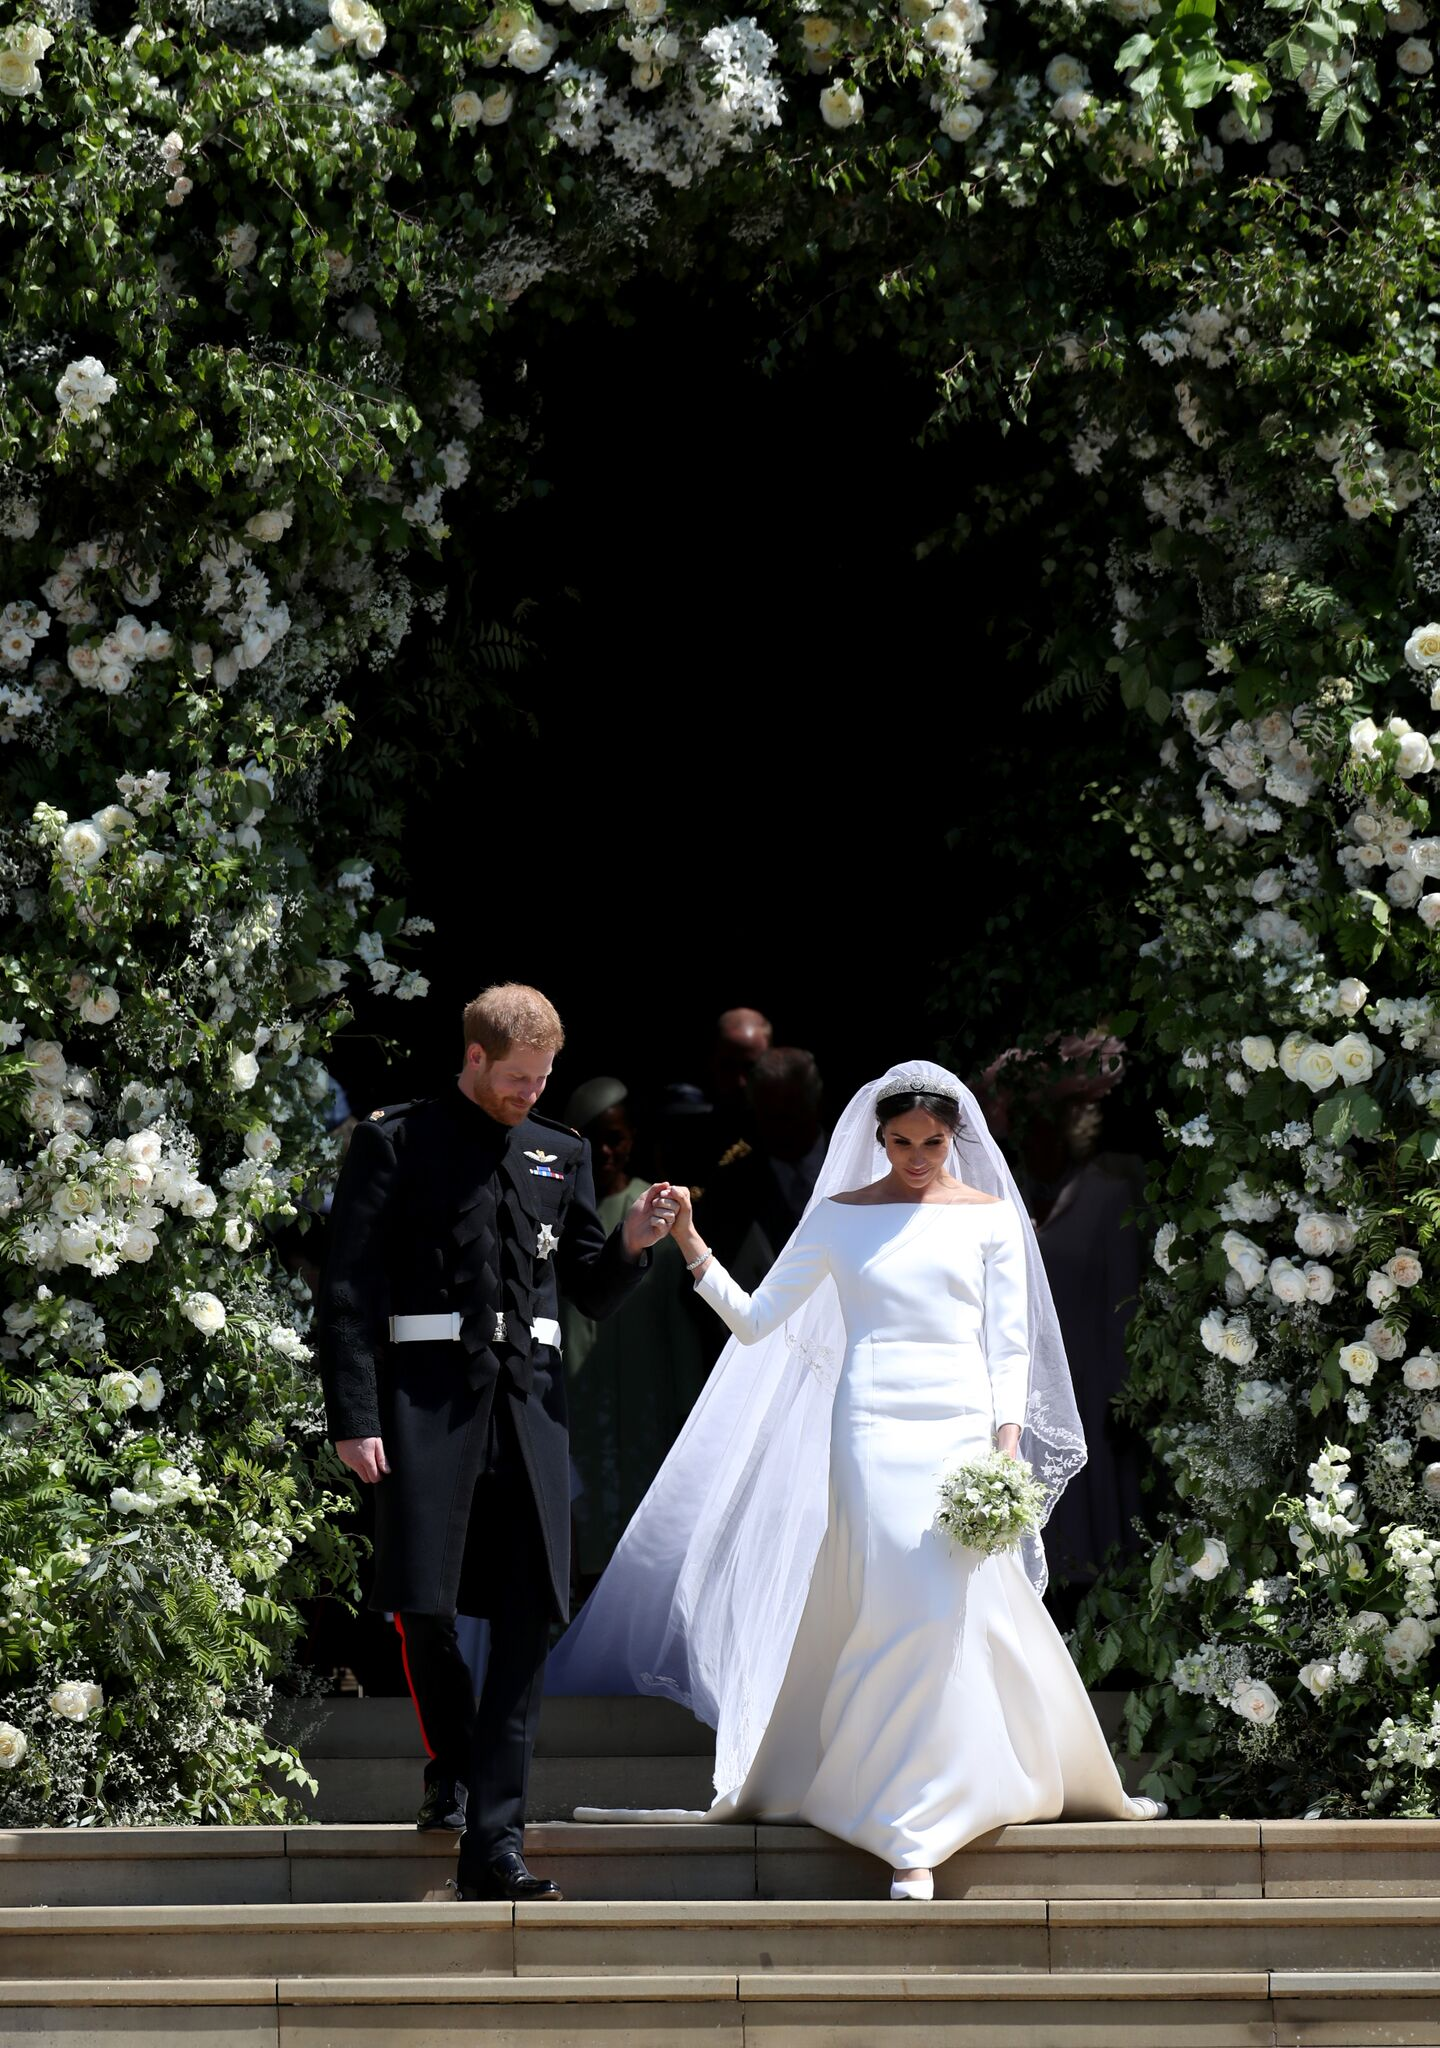 Meghan Markle and Prince Harry surrounded by flowers on their wedding day | Getty Images